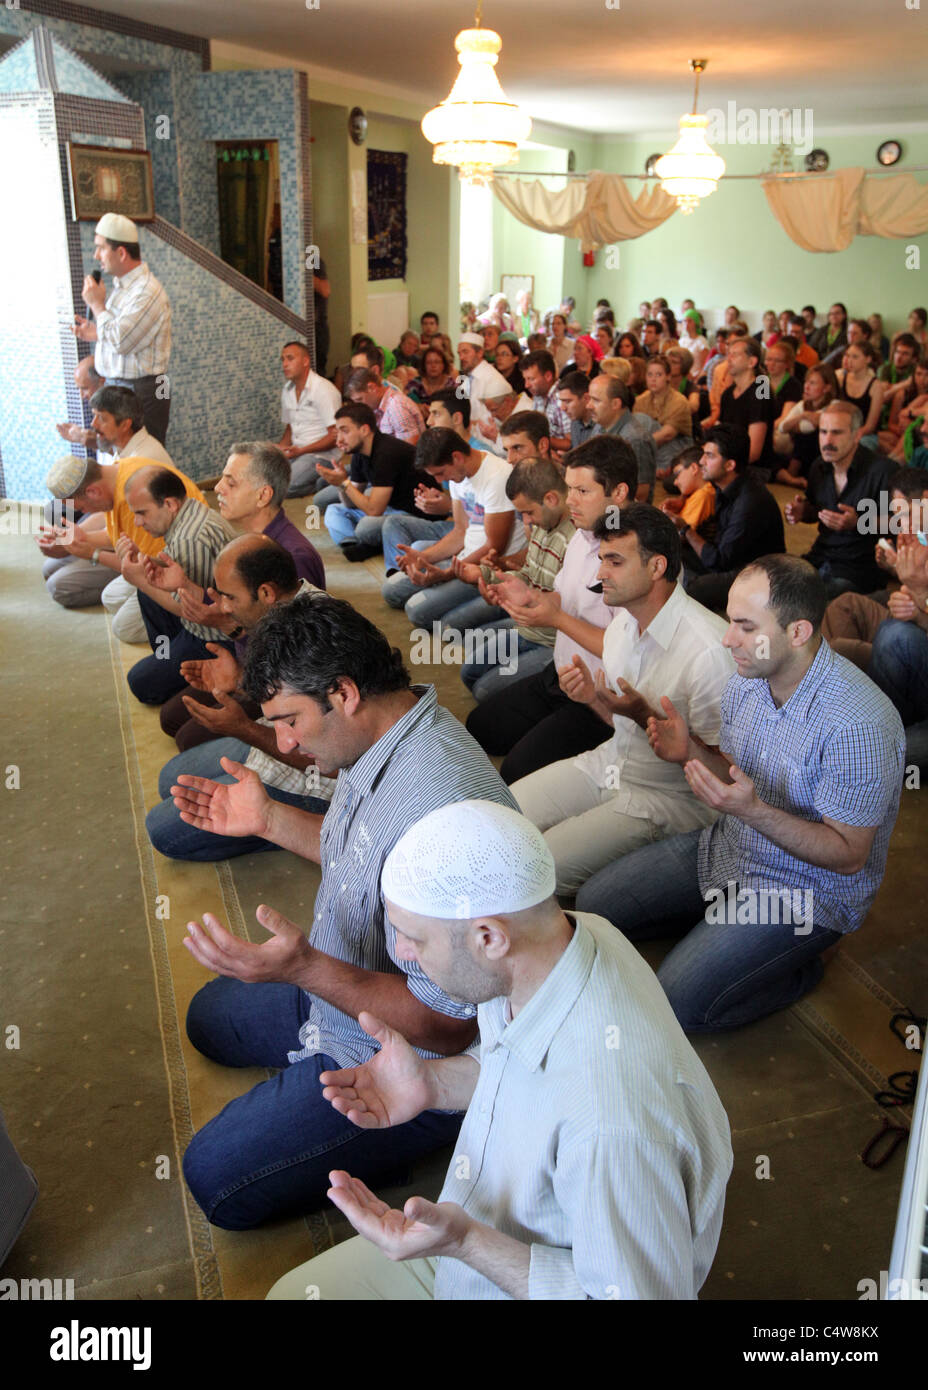 turkish muslims (front) watched by german christians (back) during a friday prayer in a mosque in Dresden, Germany. - Stock Image